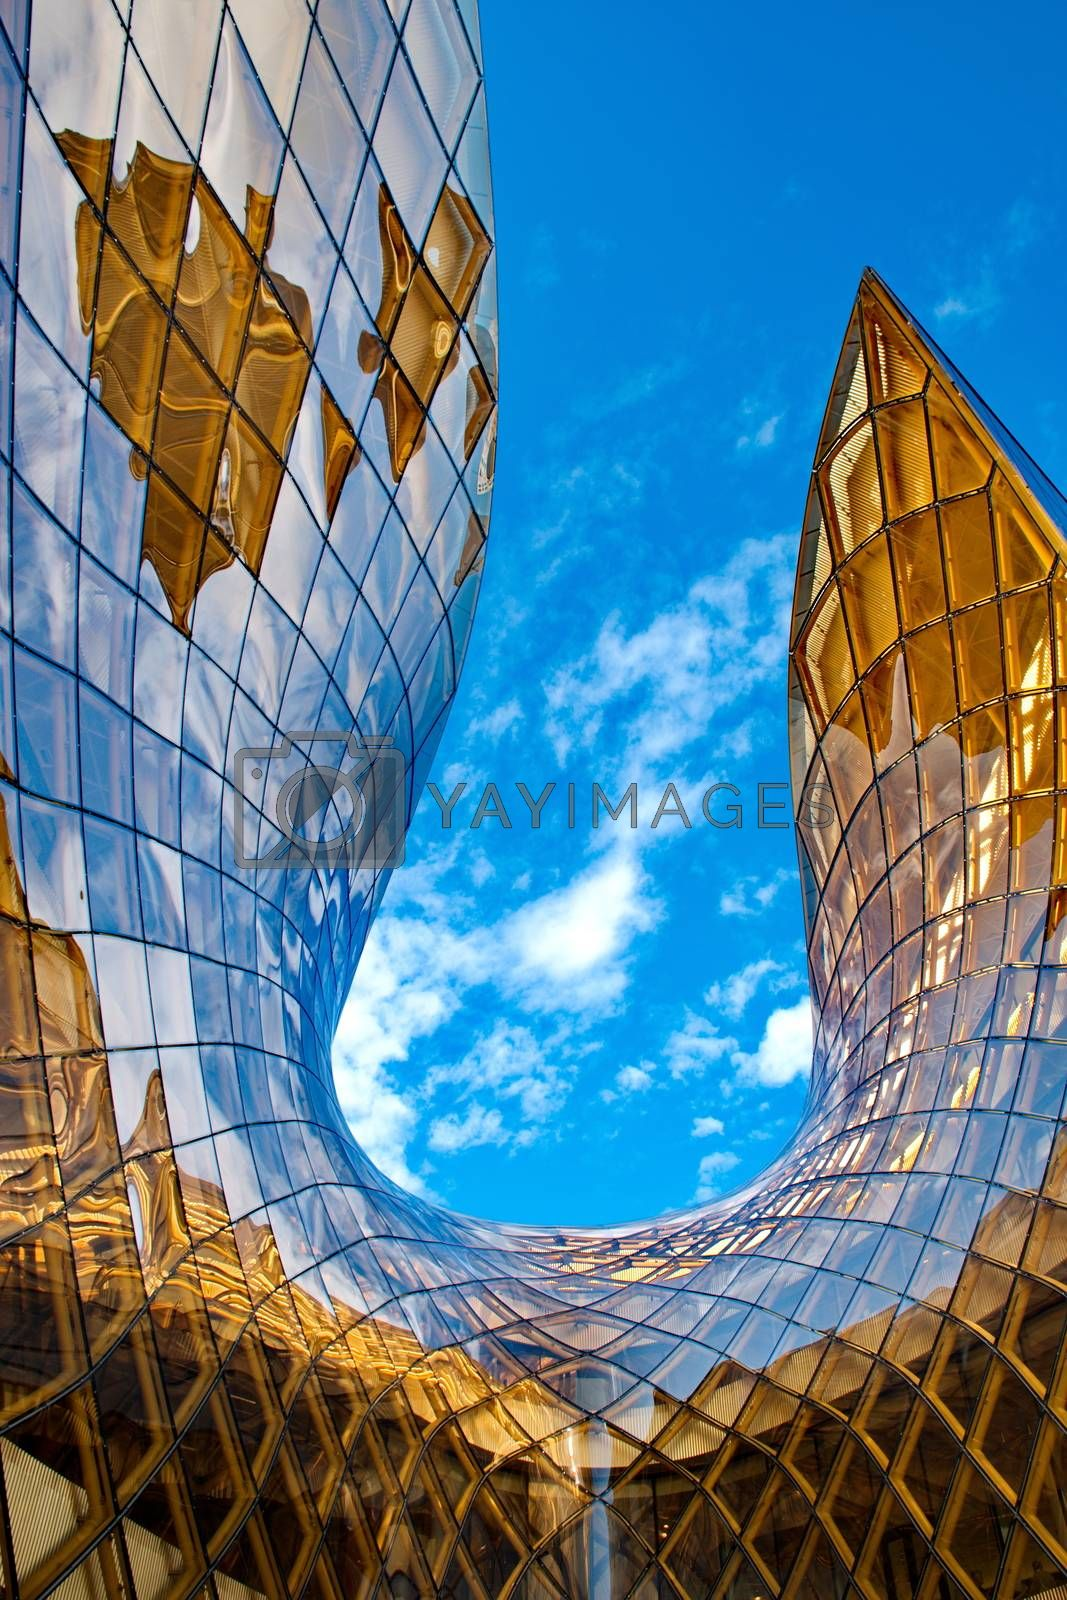 MALMO, SWEDEN - SEPTEMBER 13: Emporia Shopping Center on September 13, 2013 in Malmo. Luxury shopping mall designed by architect Gert Wingardh's Studio.